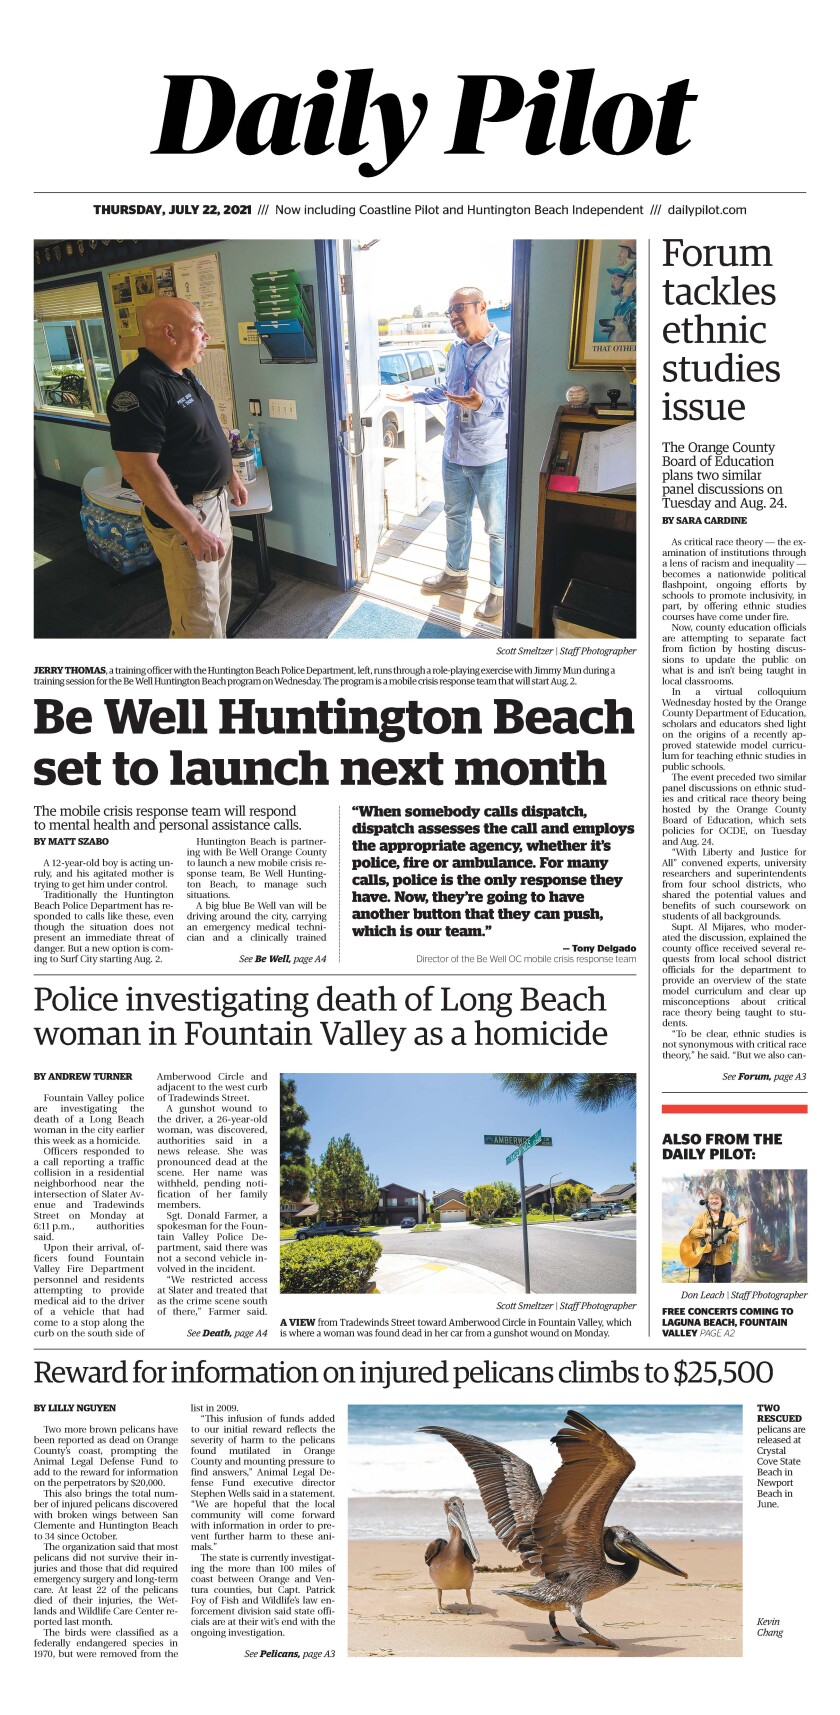 Front page of Daily Pilot e-newspaper for Thursday, July 22, 2021.